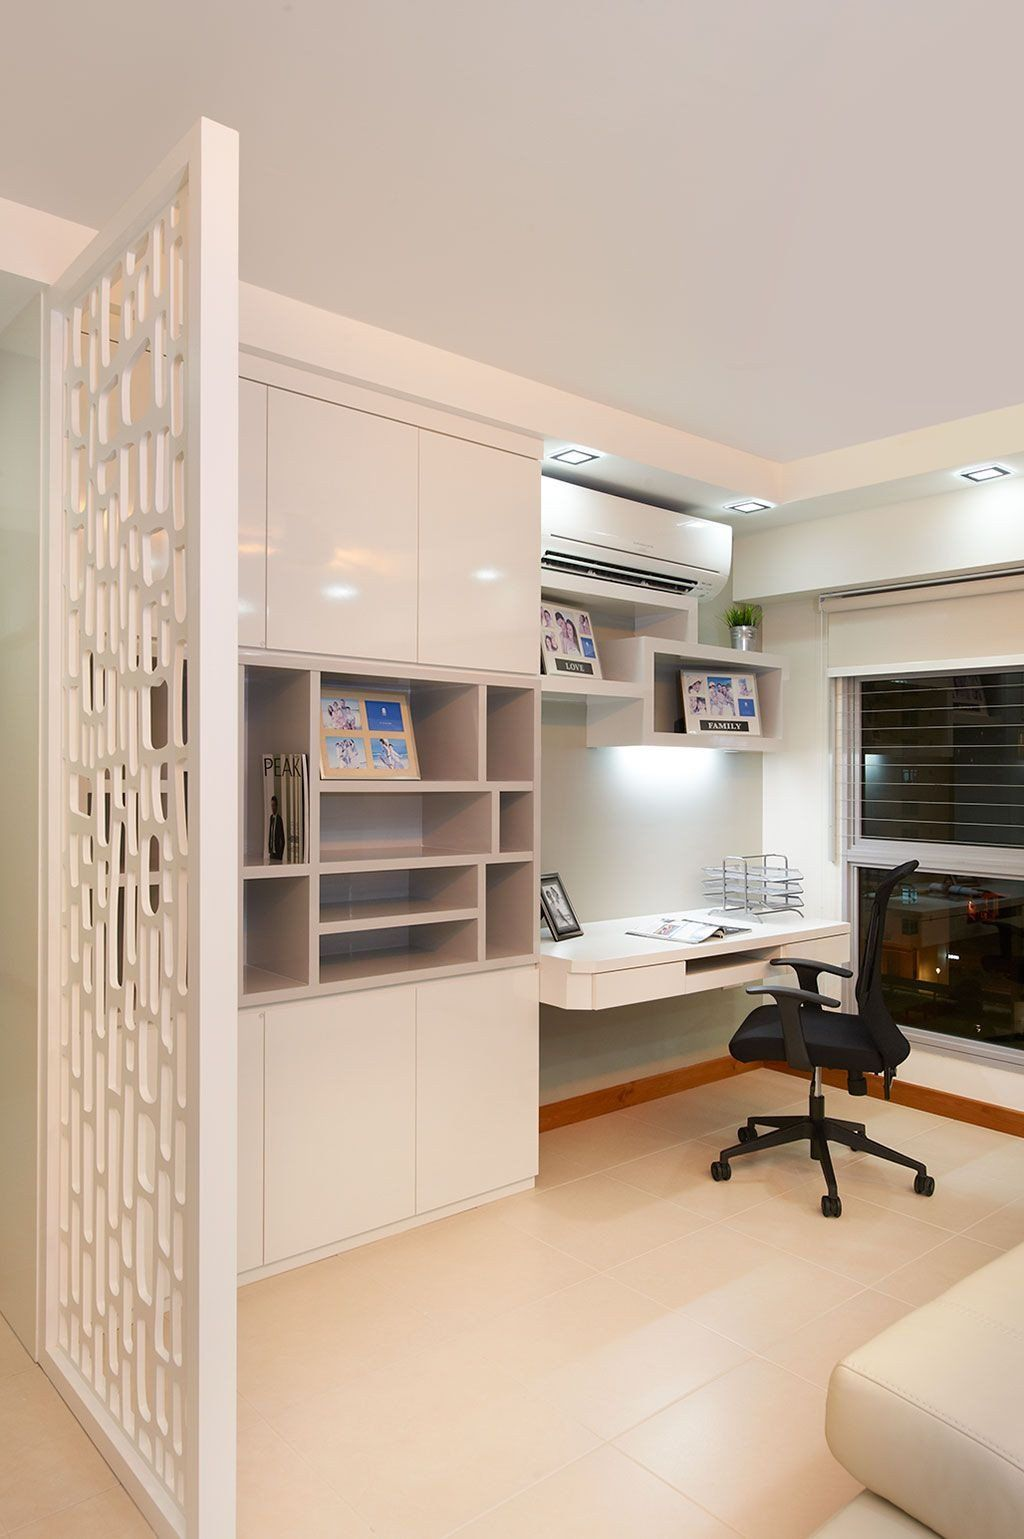 Hdb Study Room Design Ideas: Pin On Popular Bedroom Layout Ideas